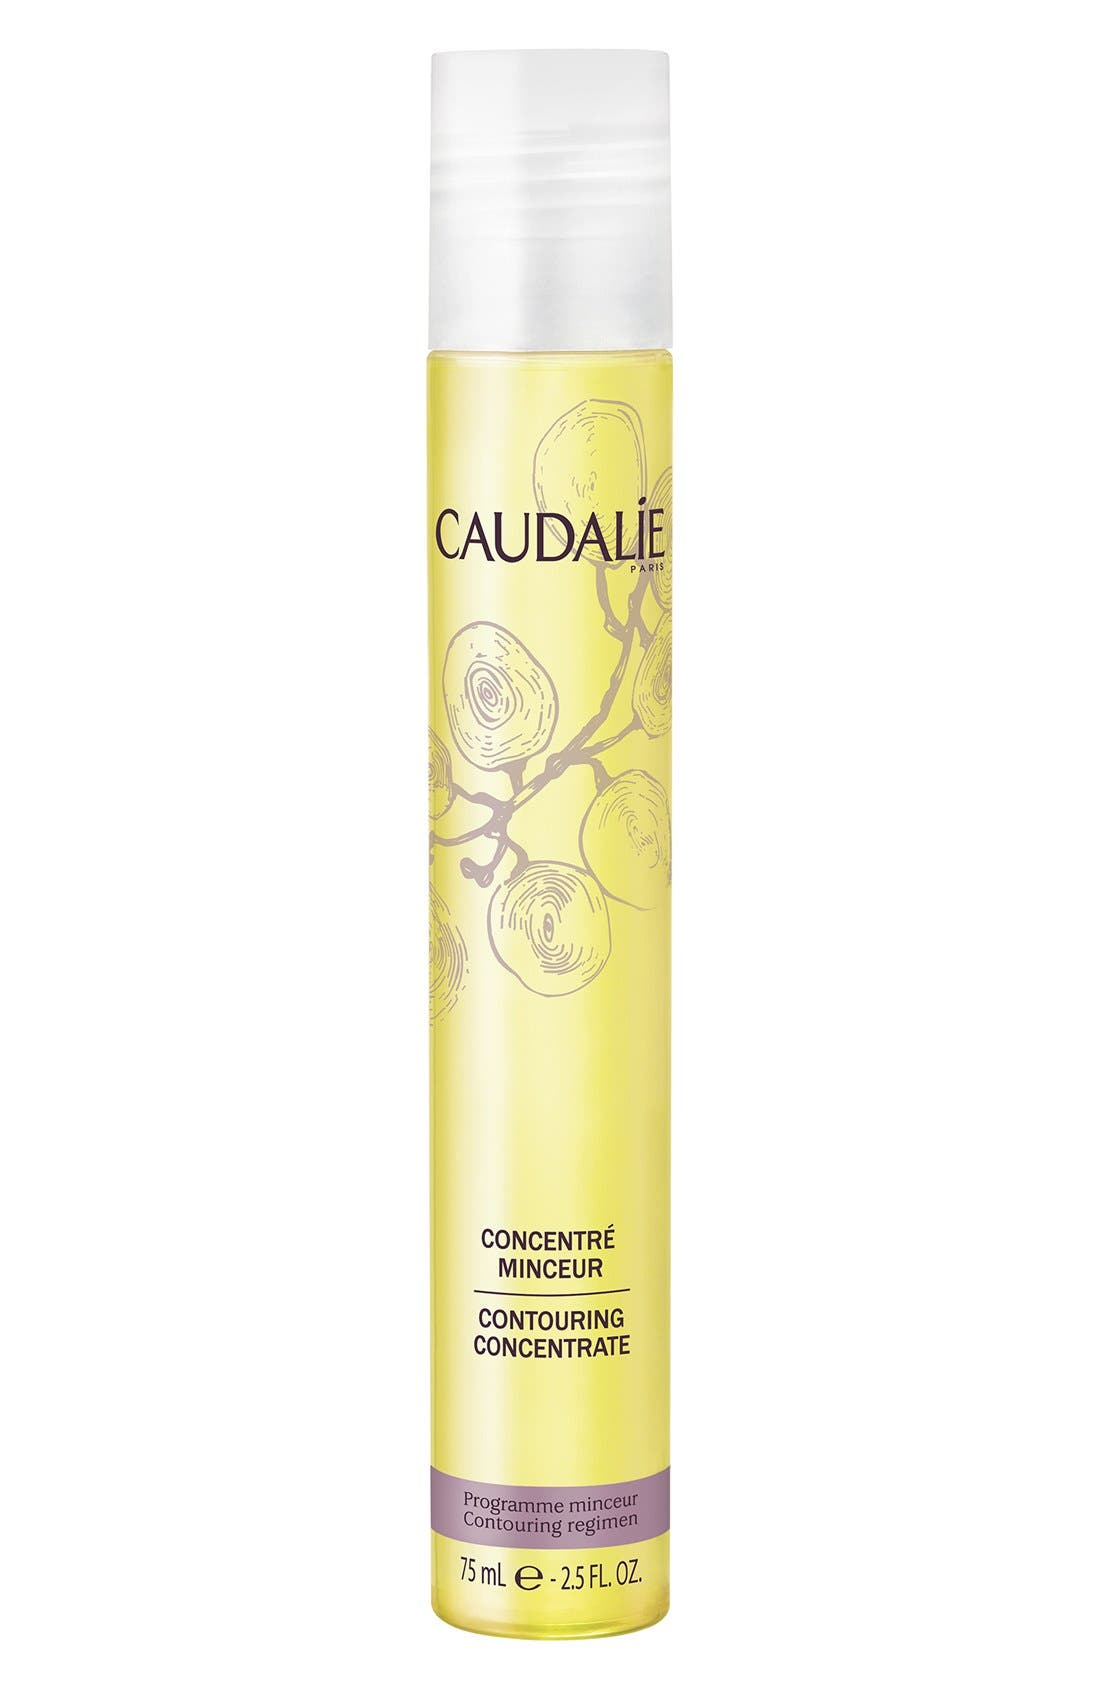 CAUDALÍE Contouring Concentrate